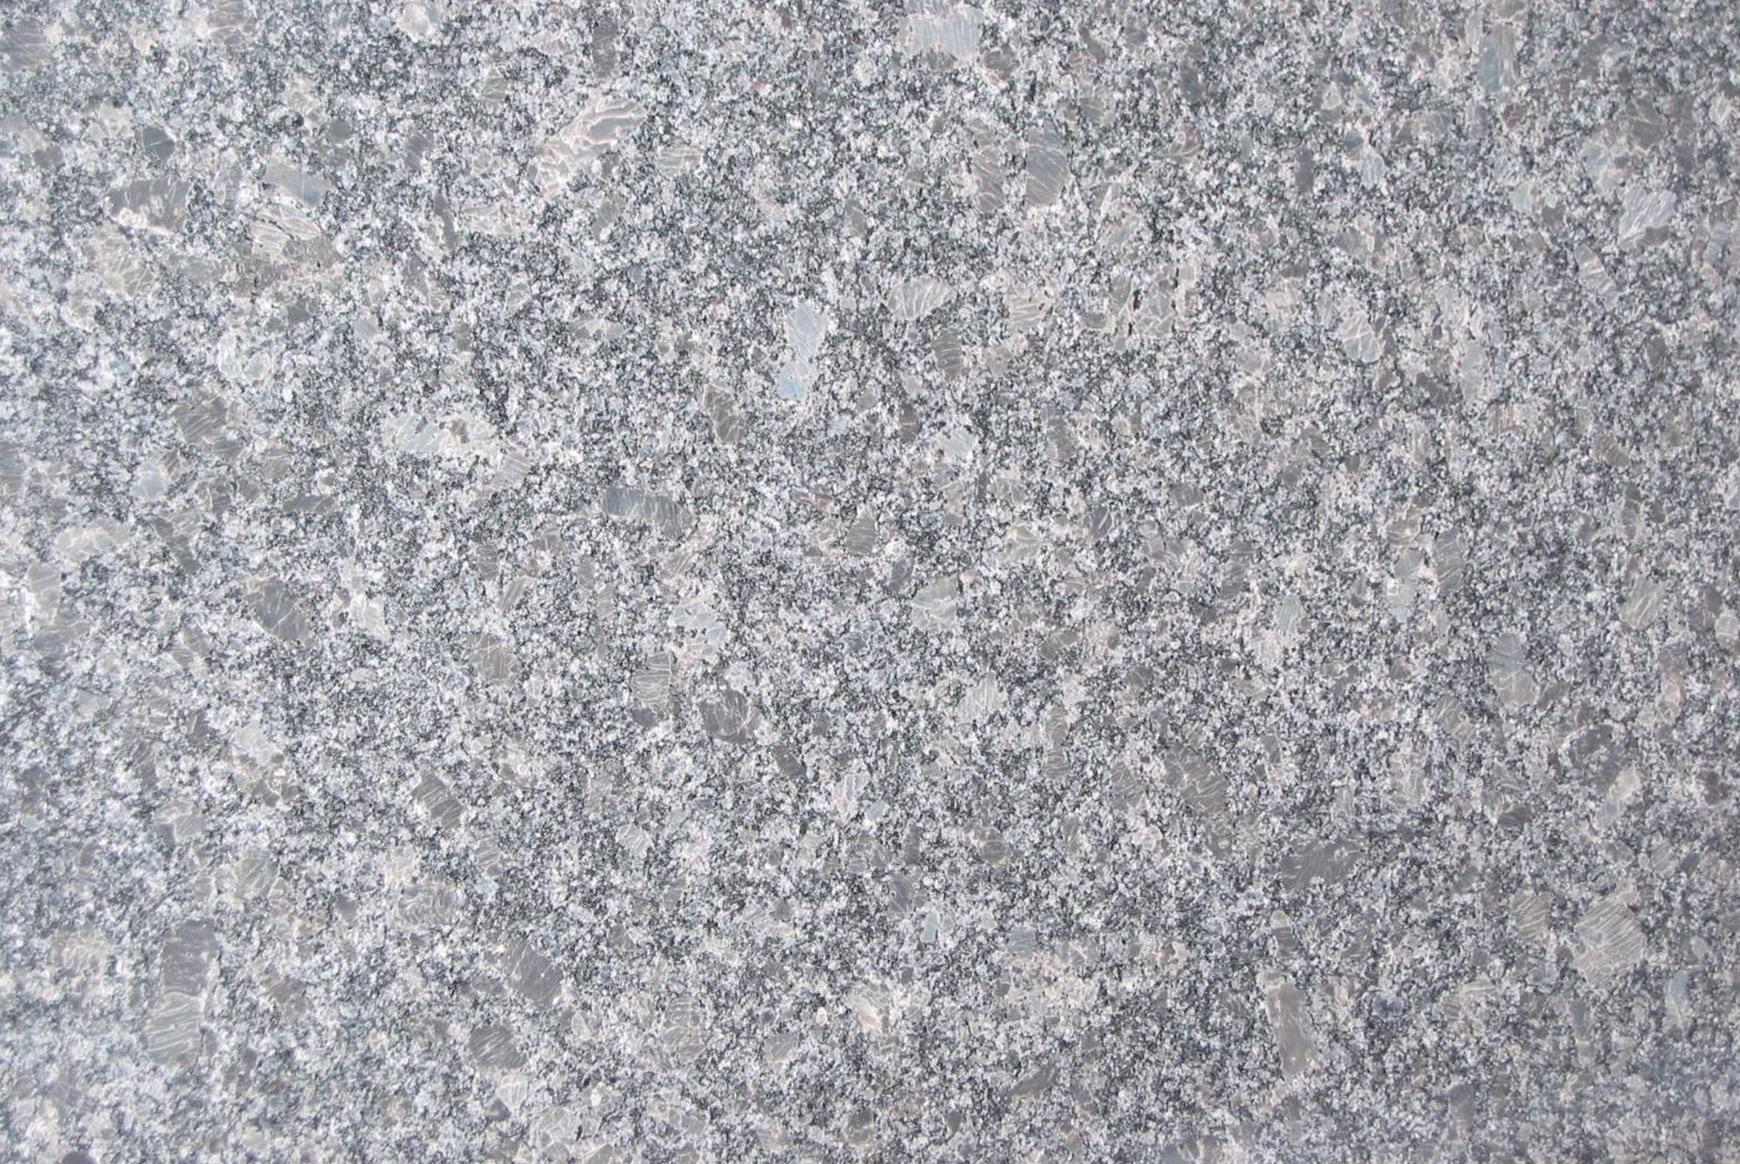 Grey Granite Slabs : Steel grey granite tiles slabs and countertops dark